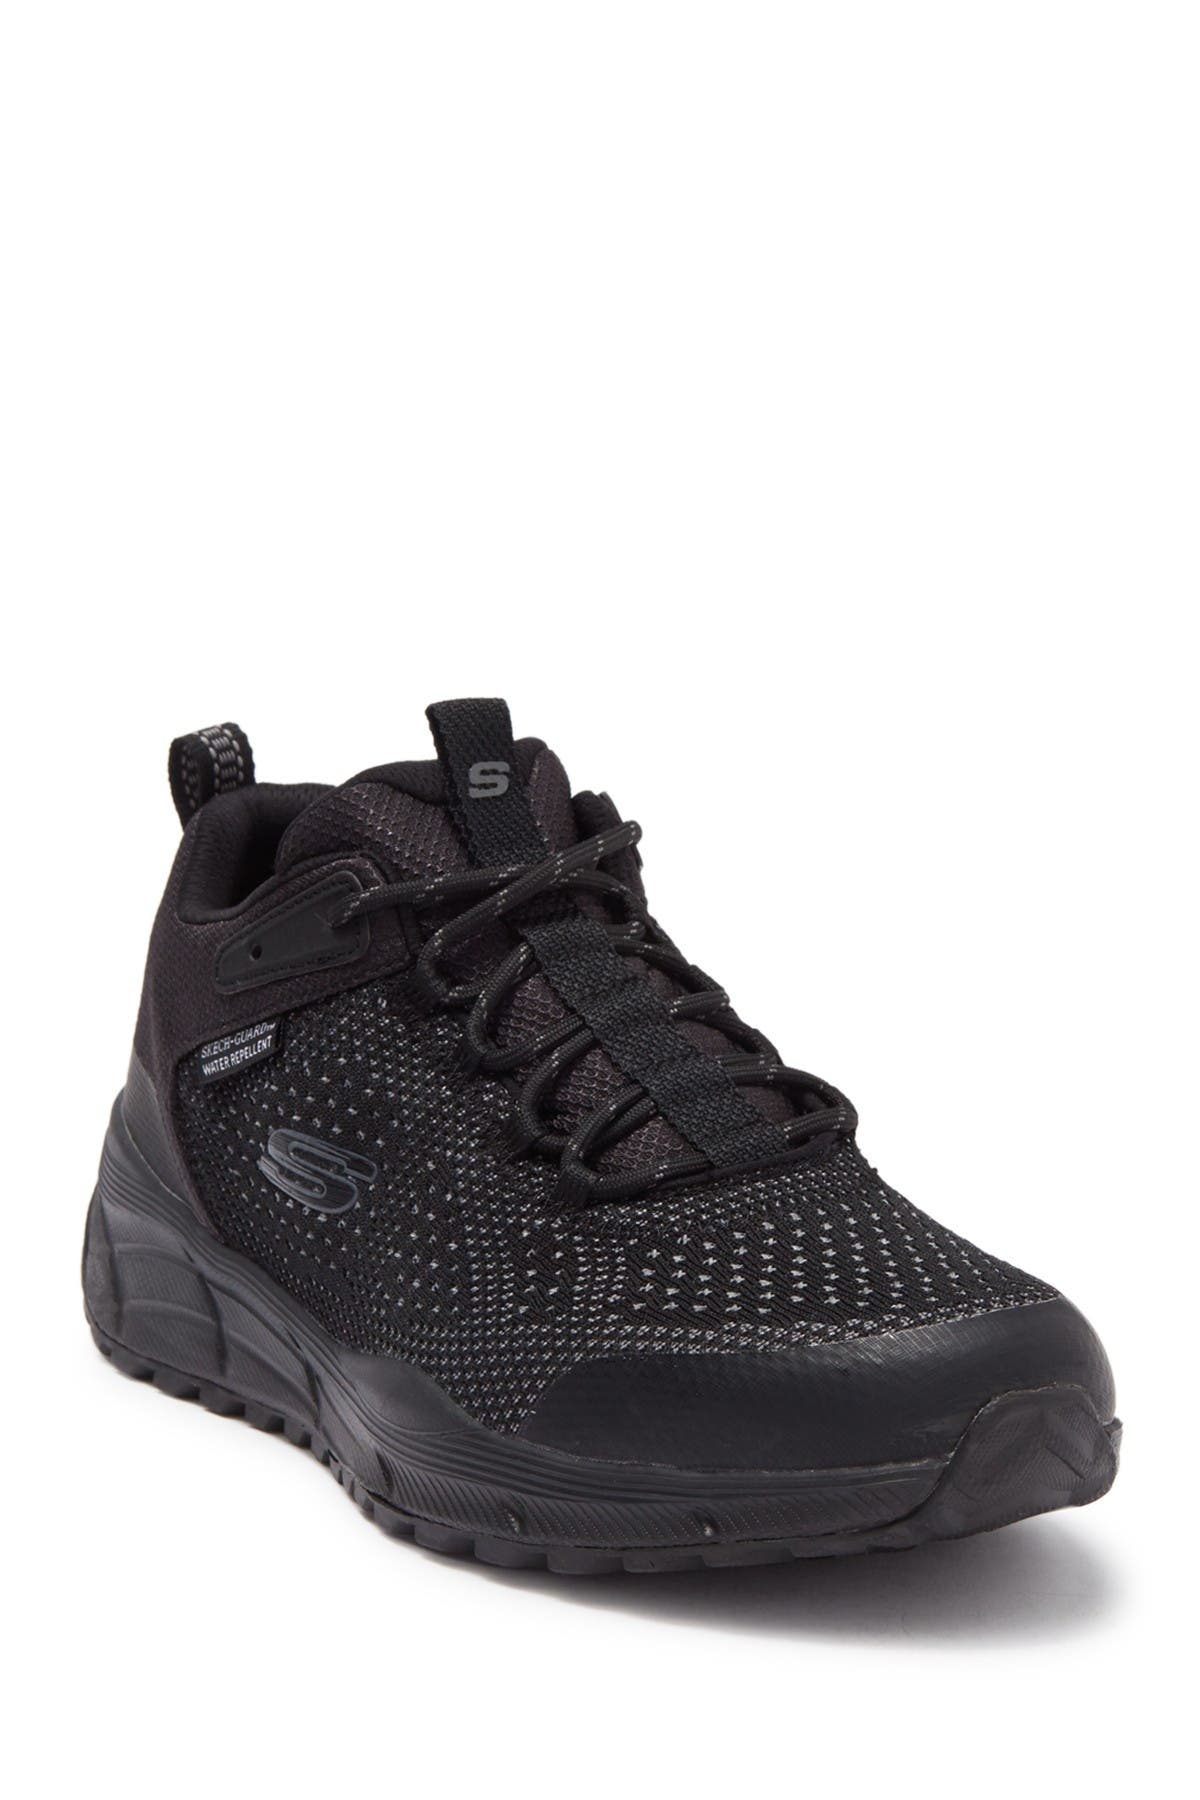 Image of Skechers Equalizer 4.0 Trail Sneaker